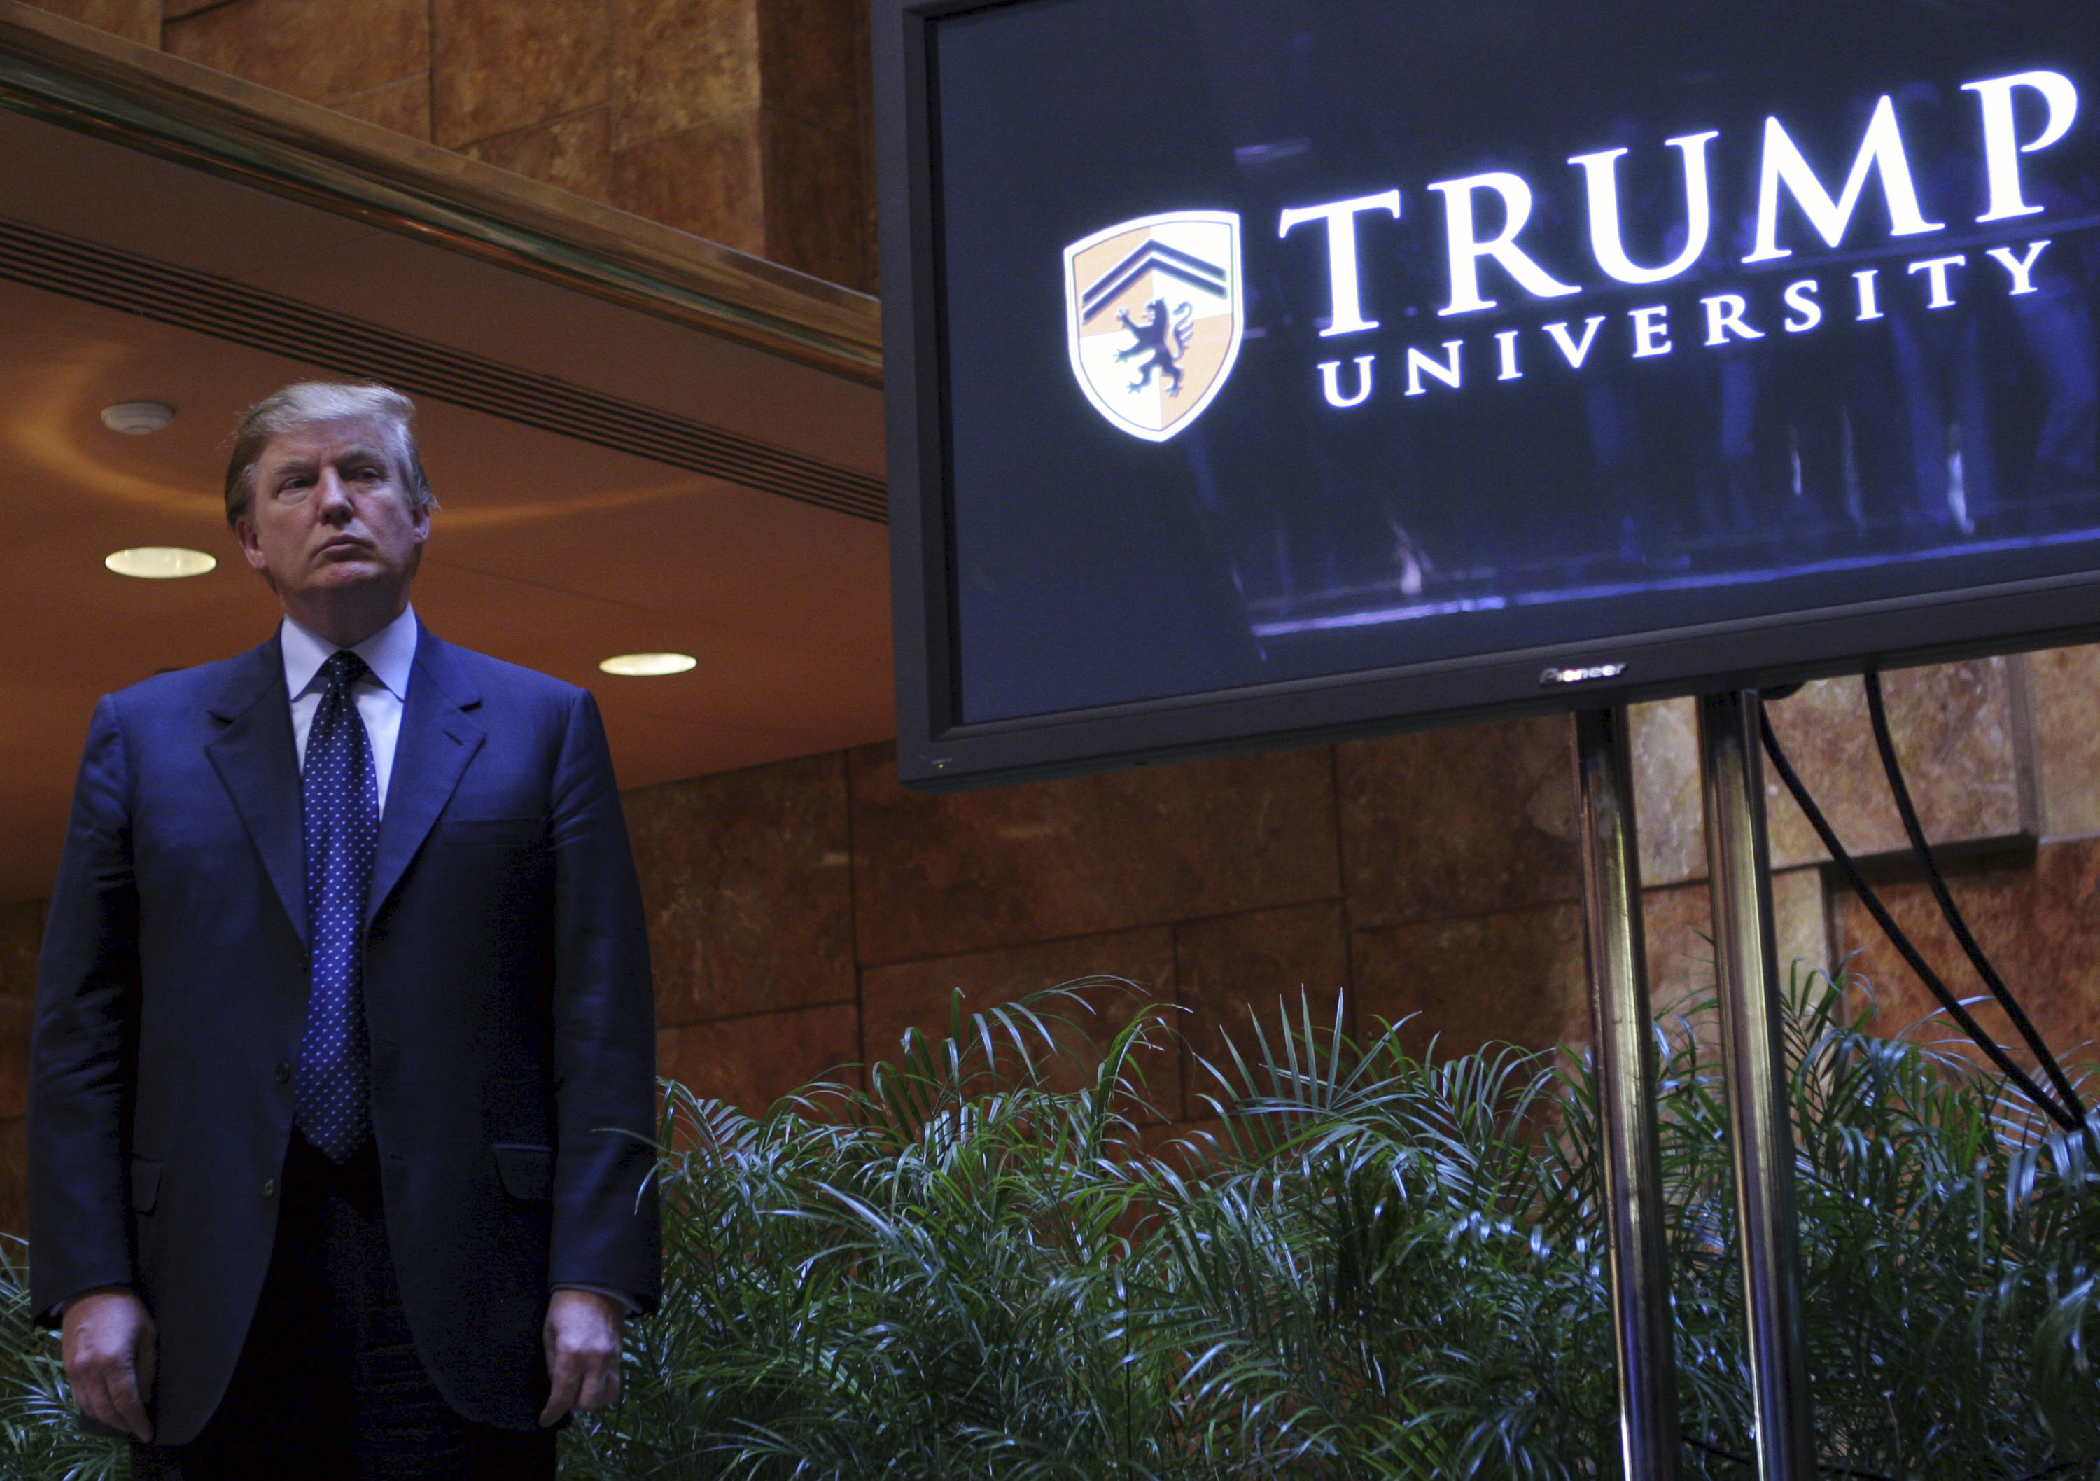 Donald Trump at a media conference announcing the establishment of Trump University, May 23, 2005 in New York City. (Getty Images)